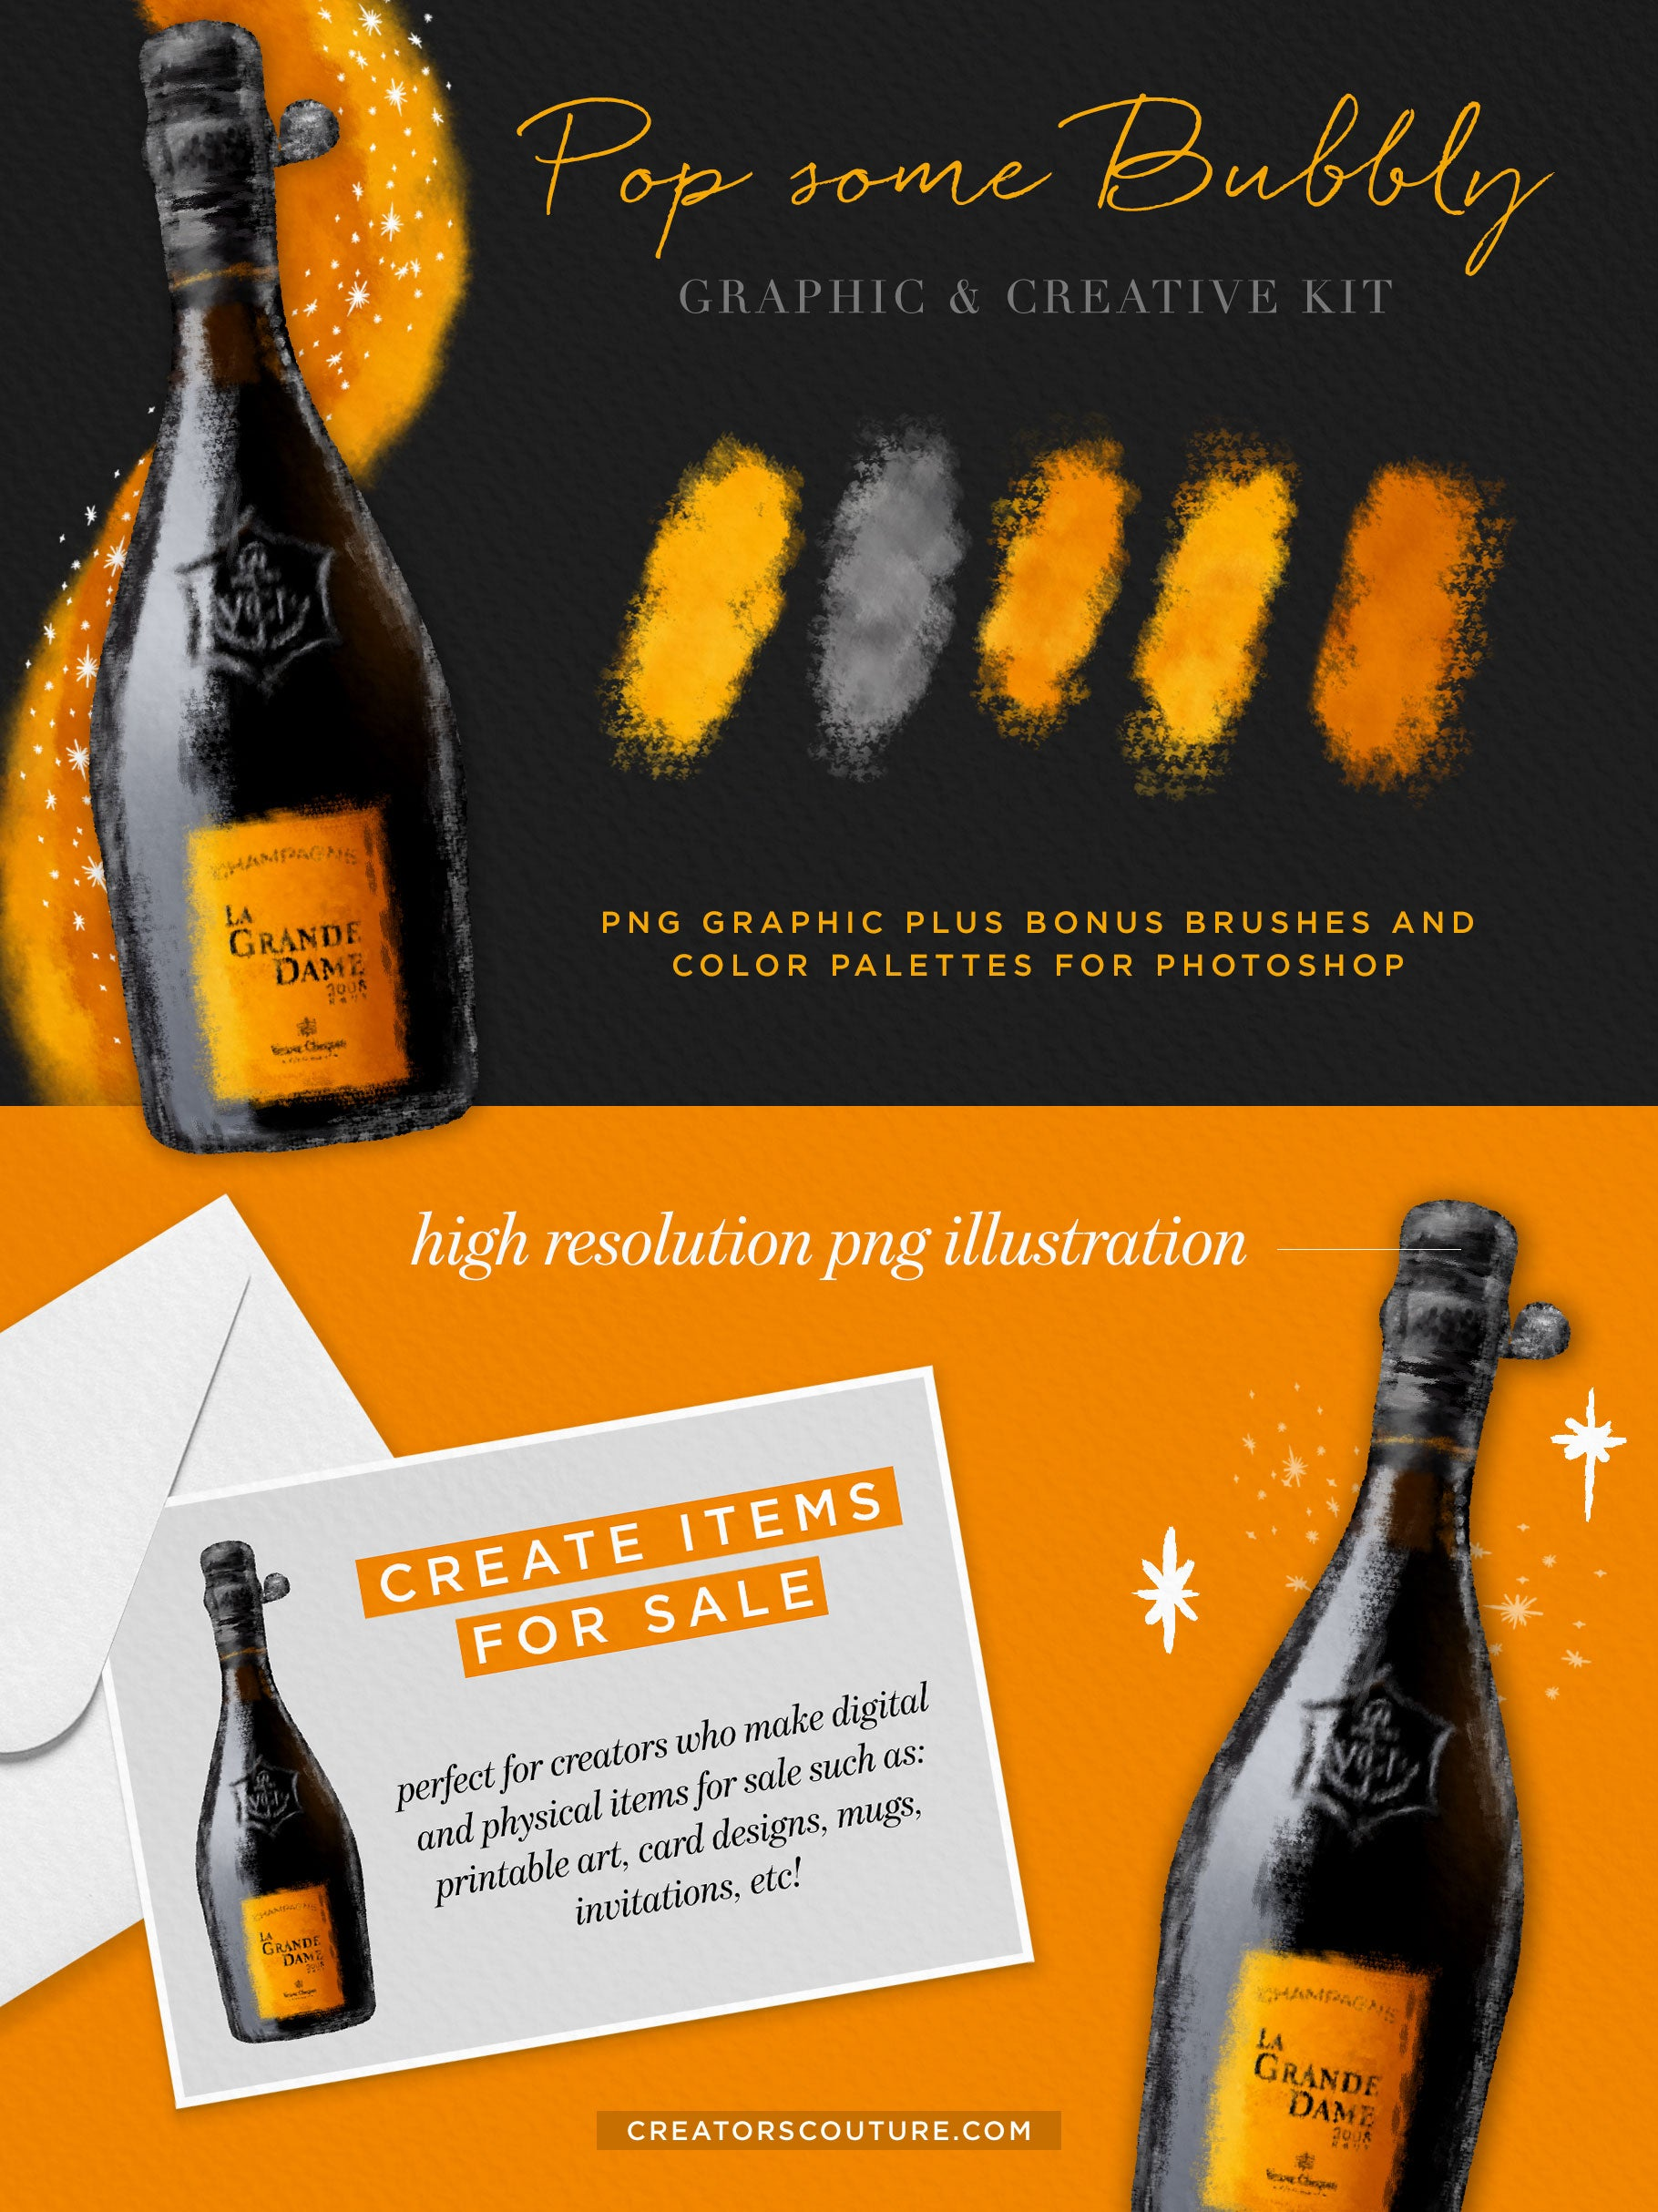 champagne bottle illustration graphic